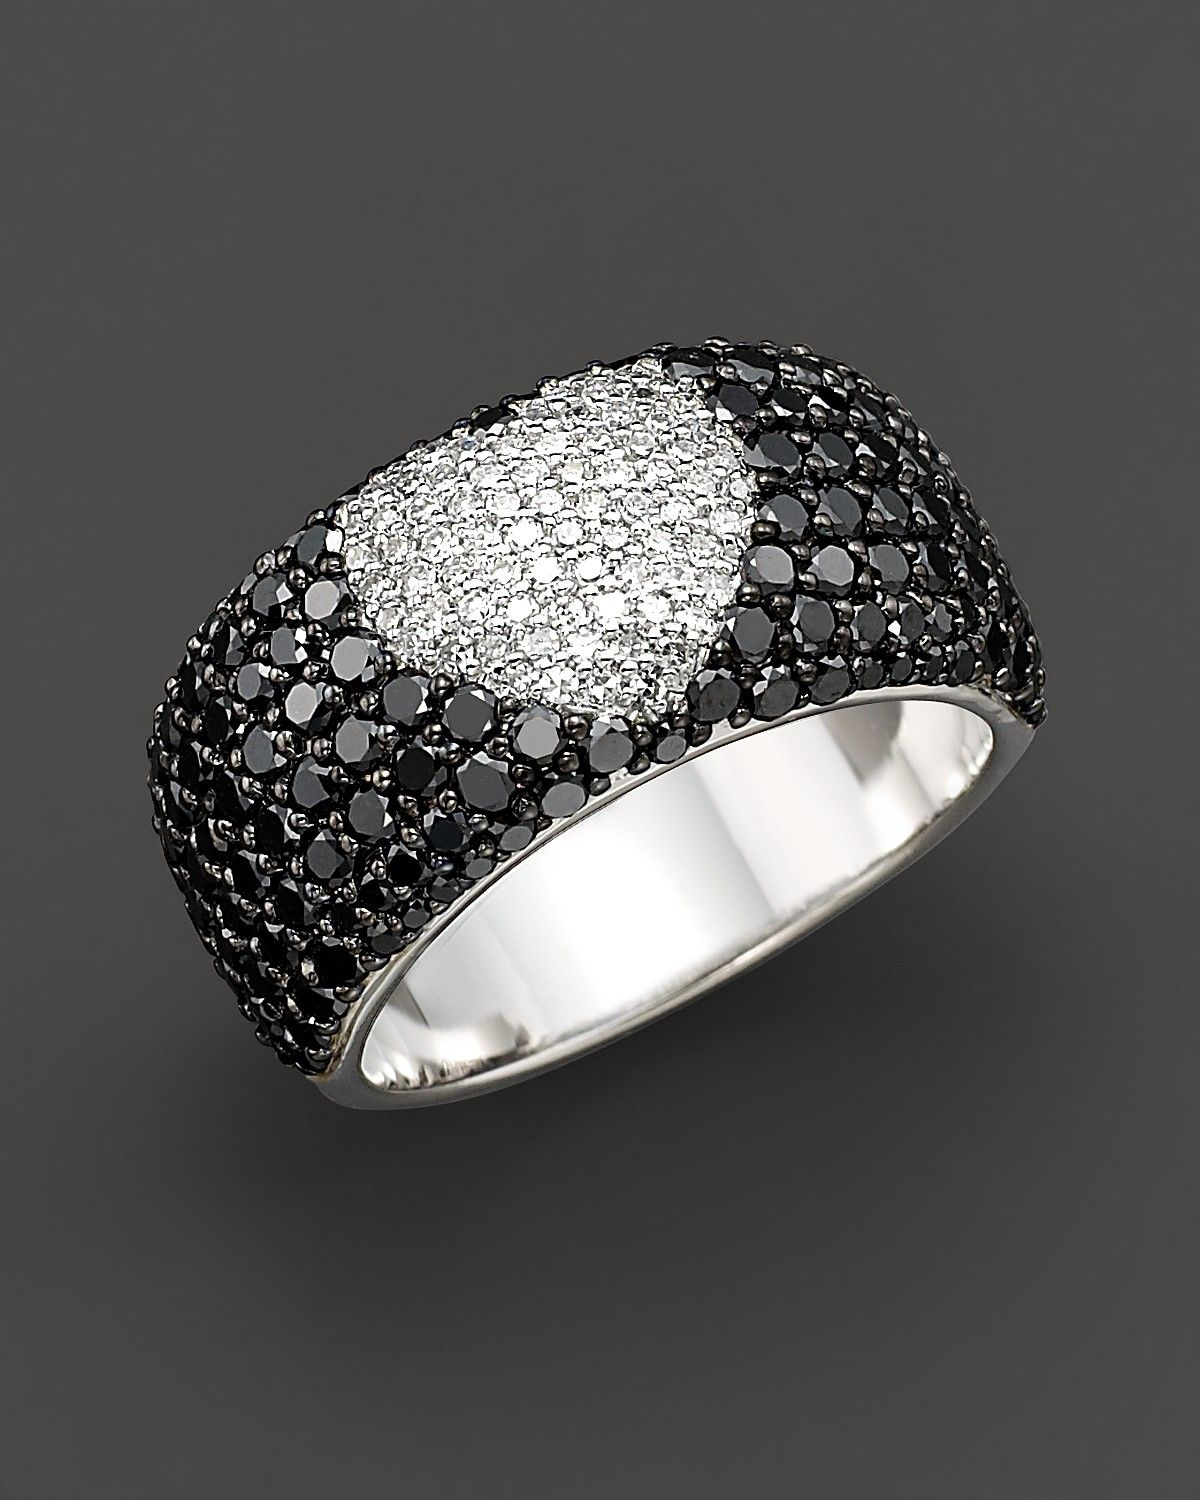 This will be going on my wish list... Black and white